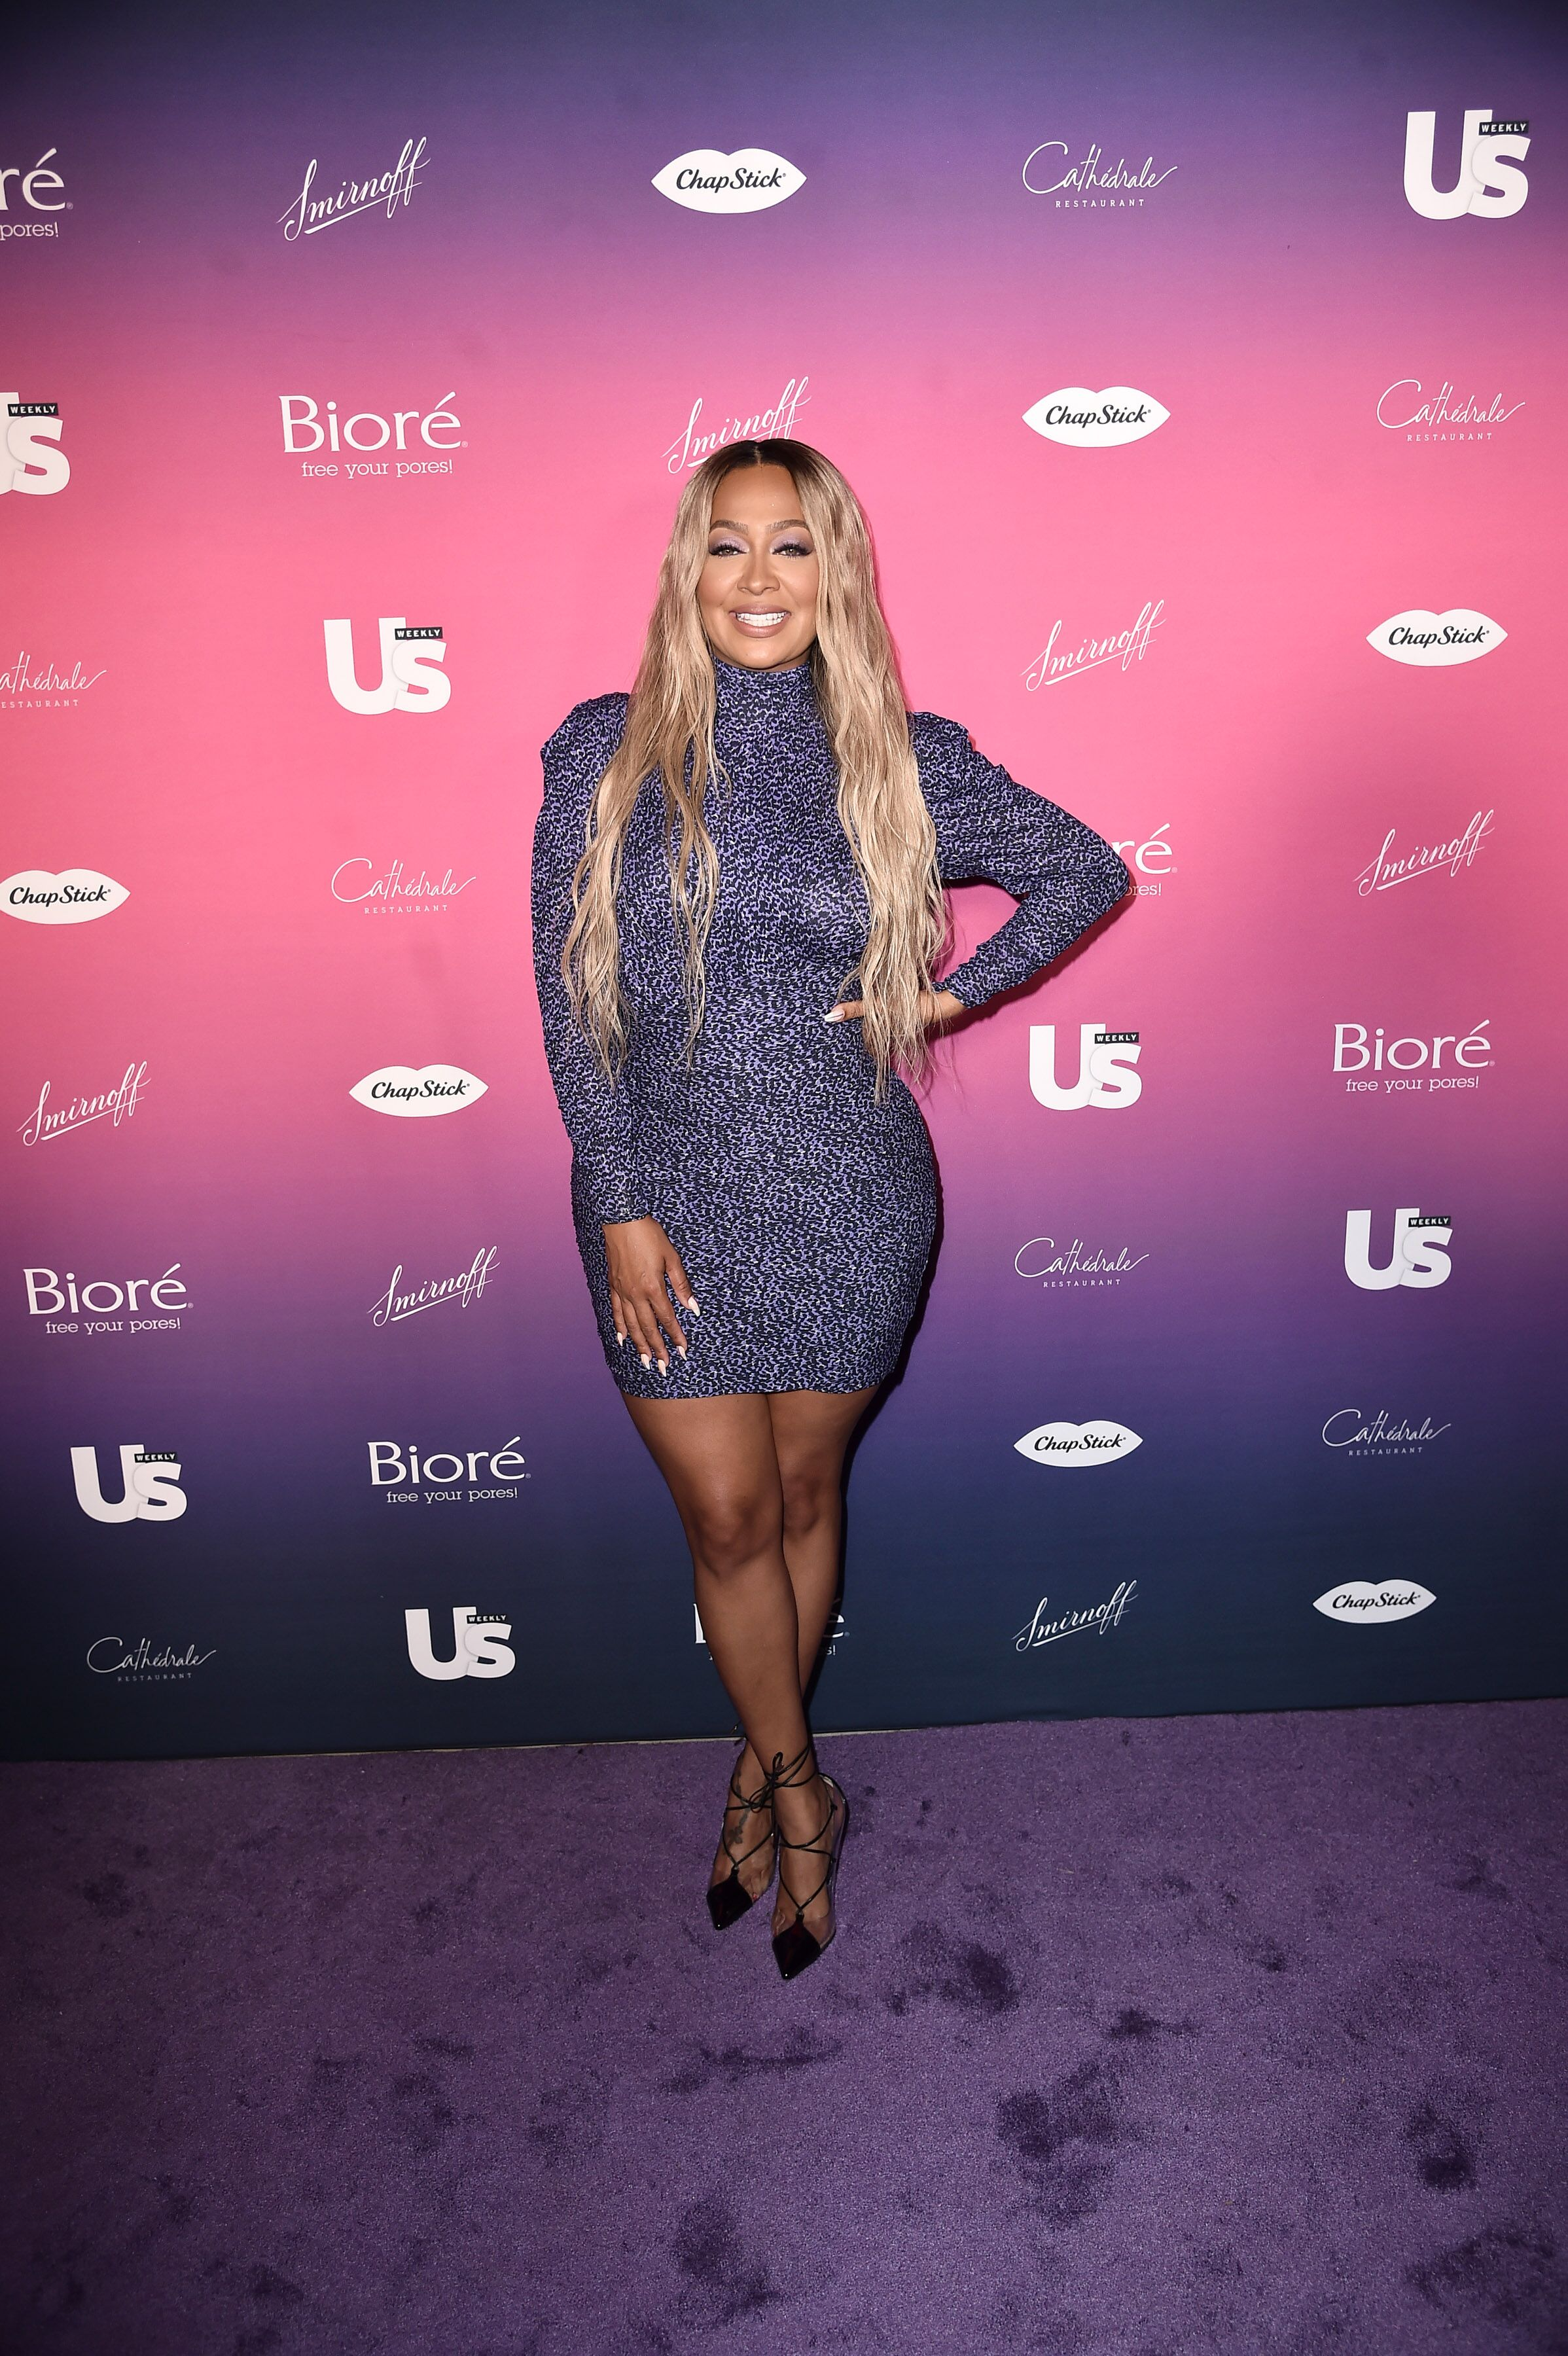 La La Anthony dressed in a sparkling gown at an US Weekly Event | Source: Getty Images/GlobalImagesUkraine